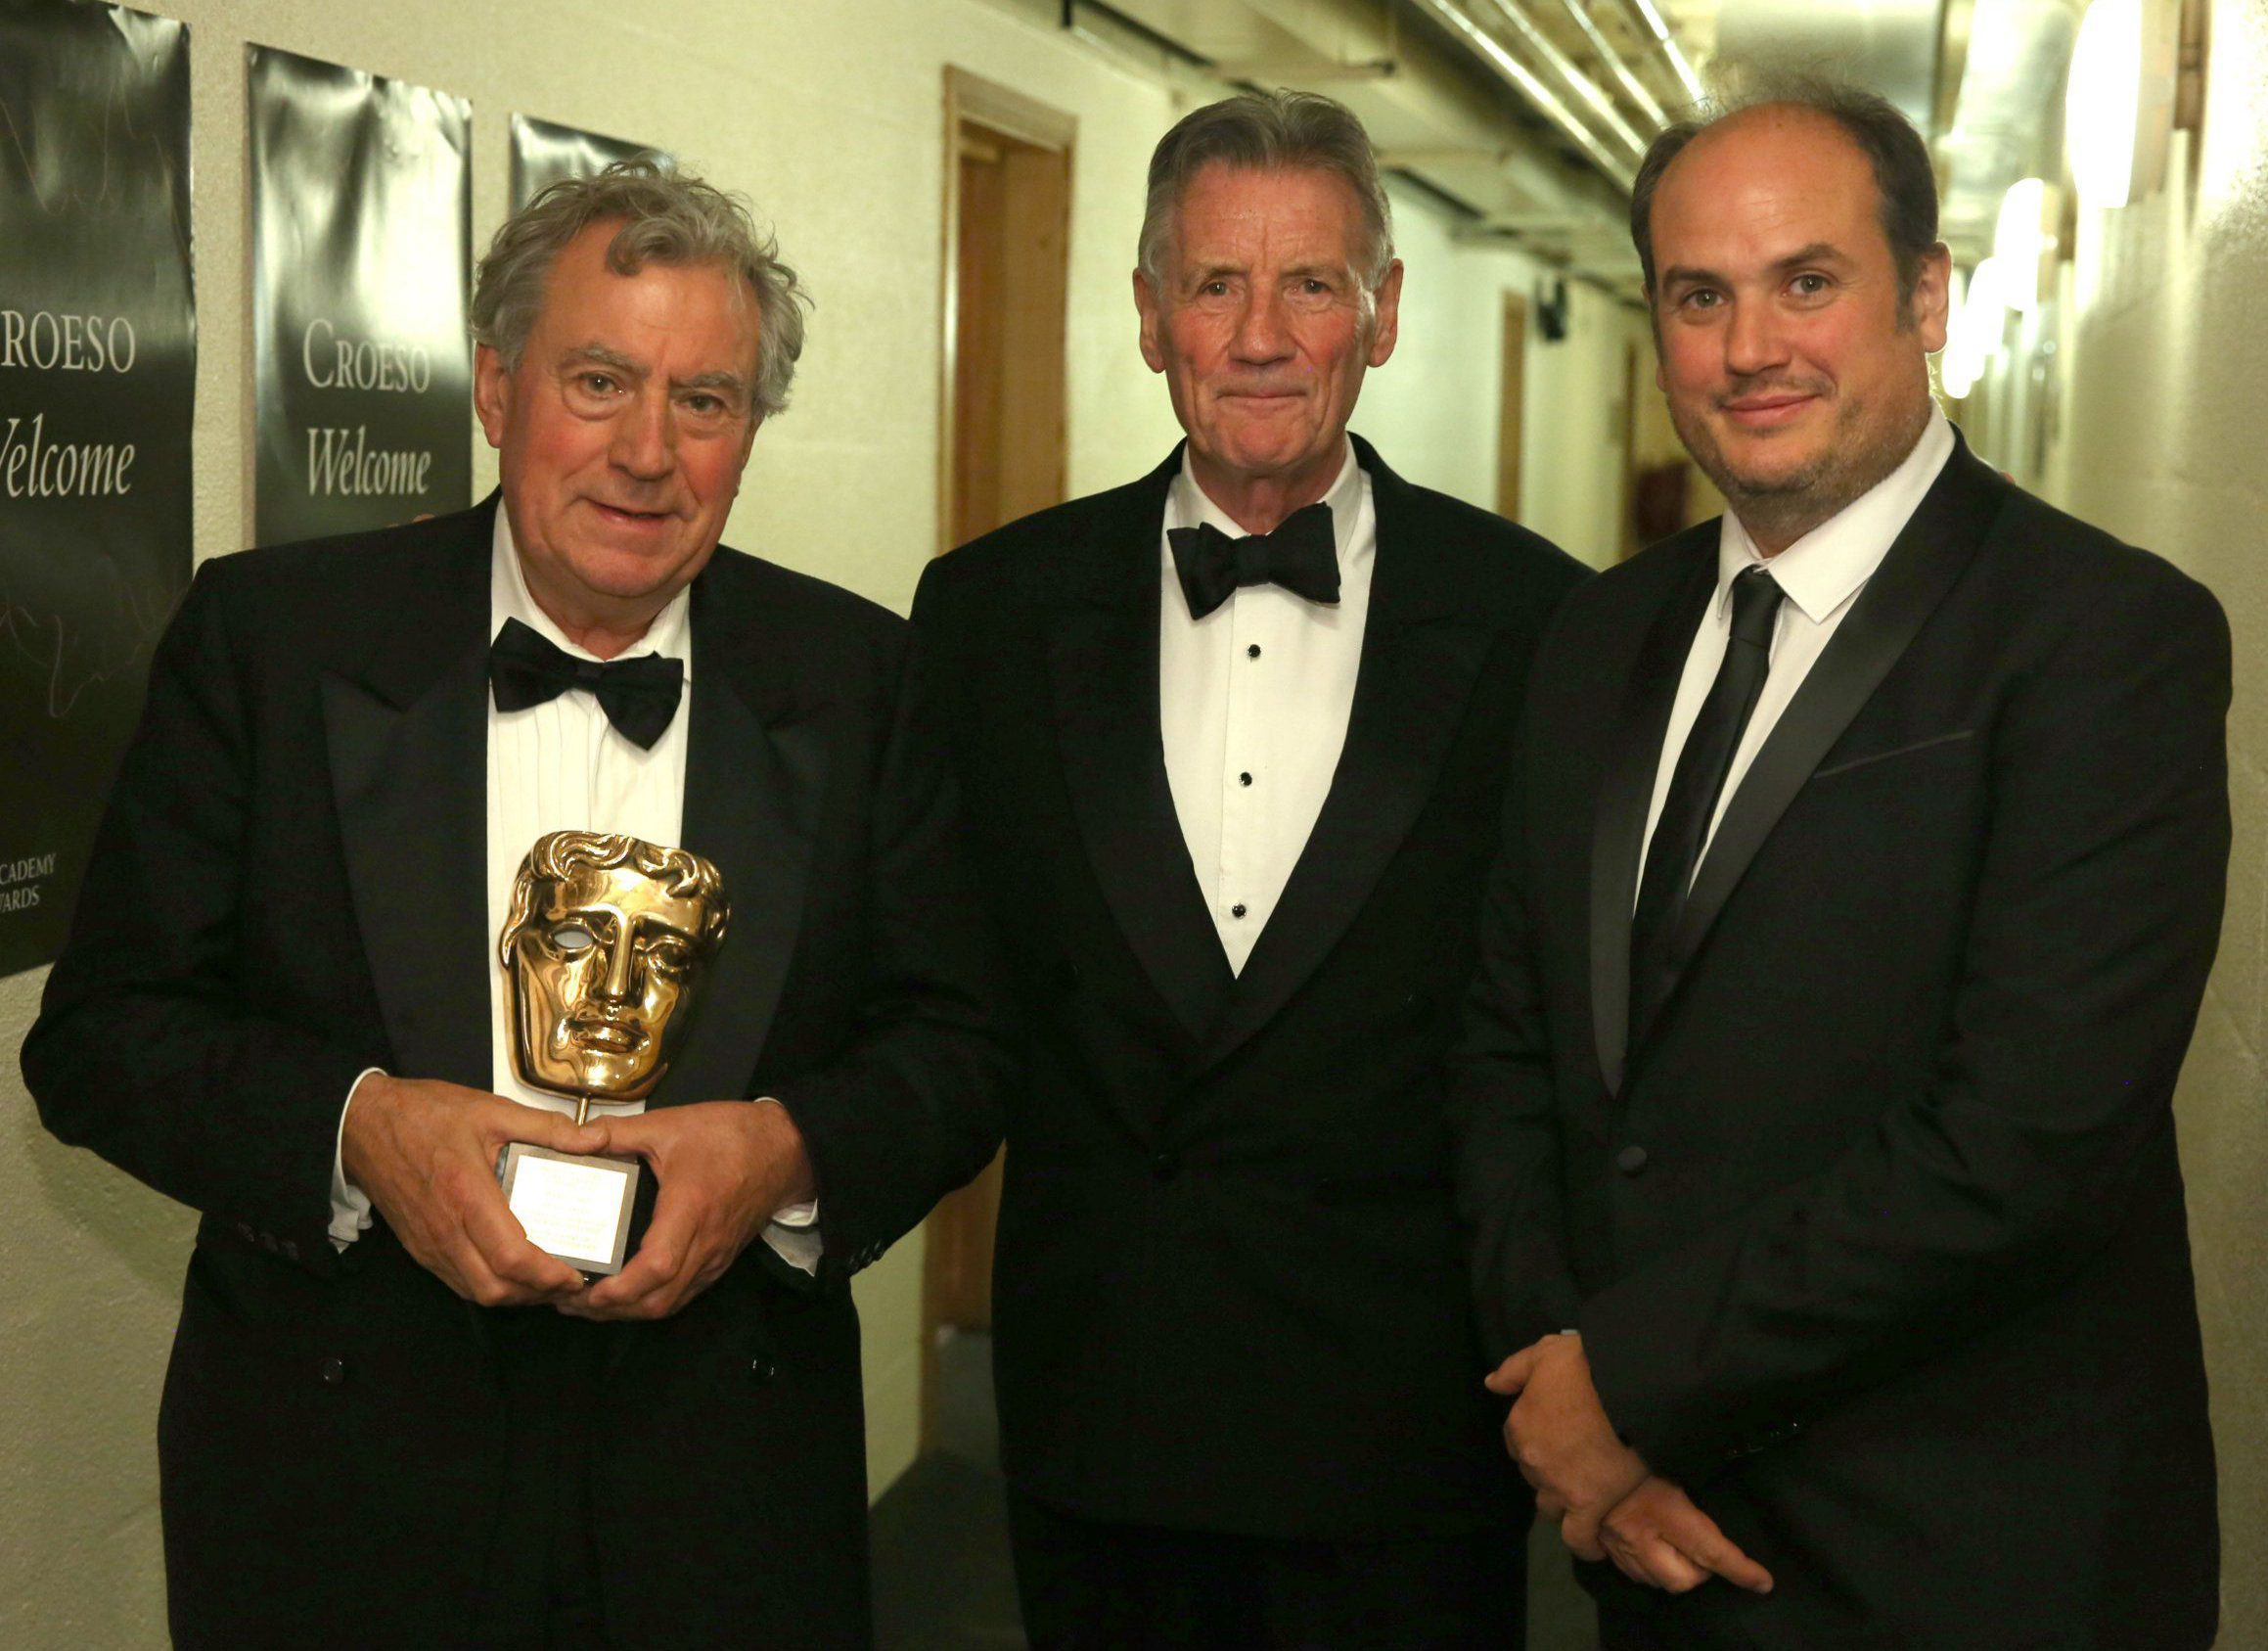 Mandatory Credit: Photo by Mei Lewis/BAFTA/REX/Shutterstock (6050988d) Terry Jones, Michael Palin and Bill Jones BAFTA Cymru Awards, Backstage, Cardiff, Wales, UK - 02 Oct 2016